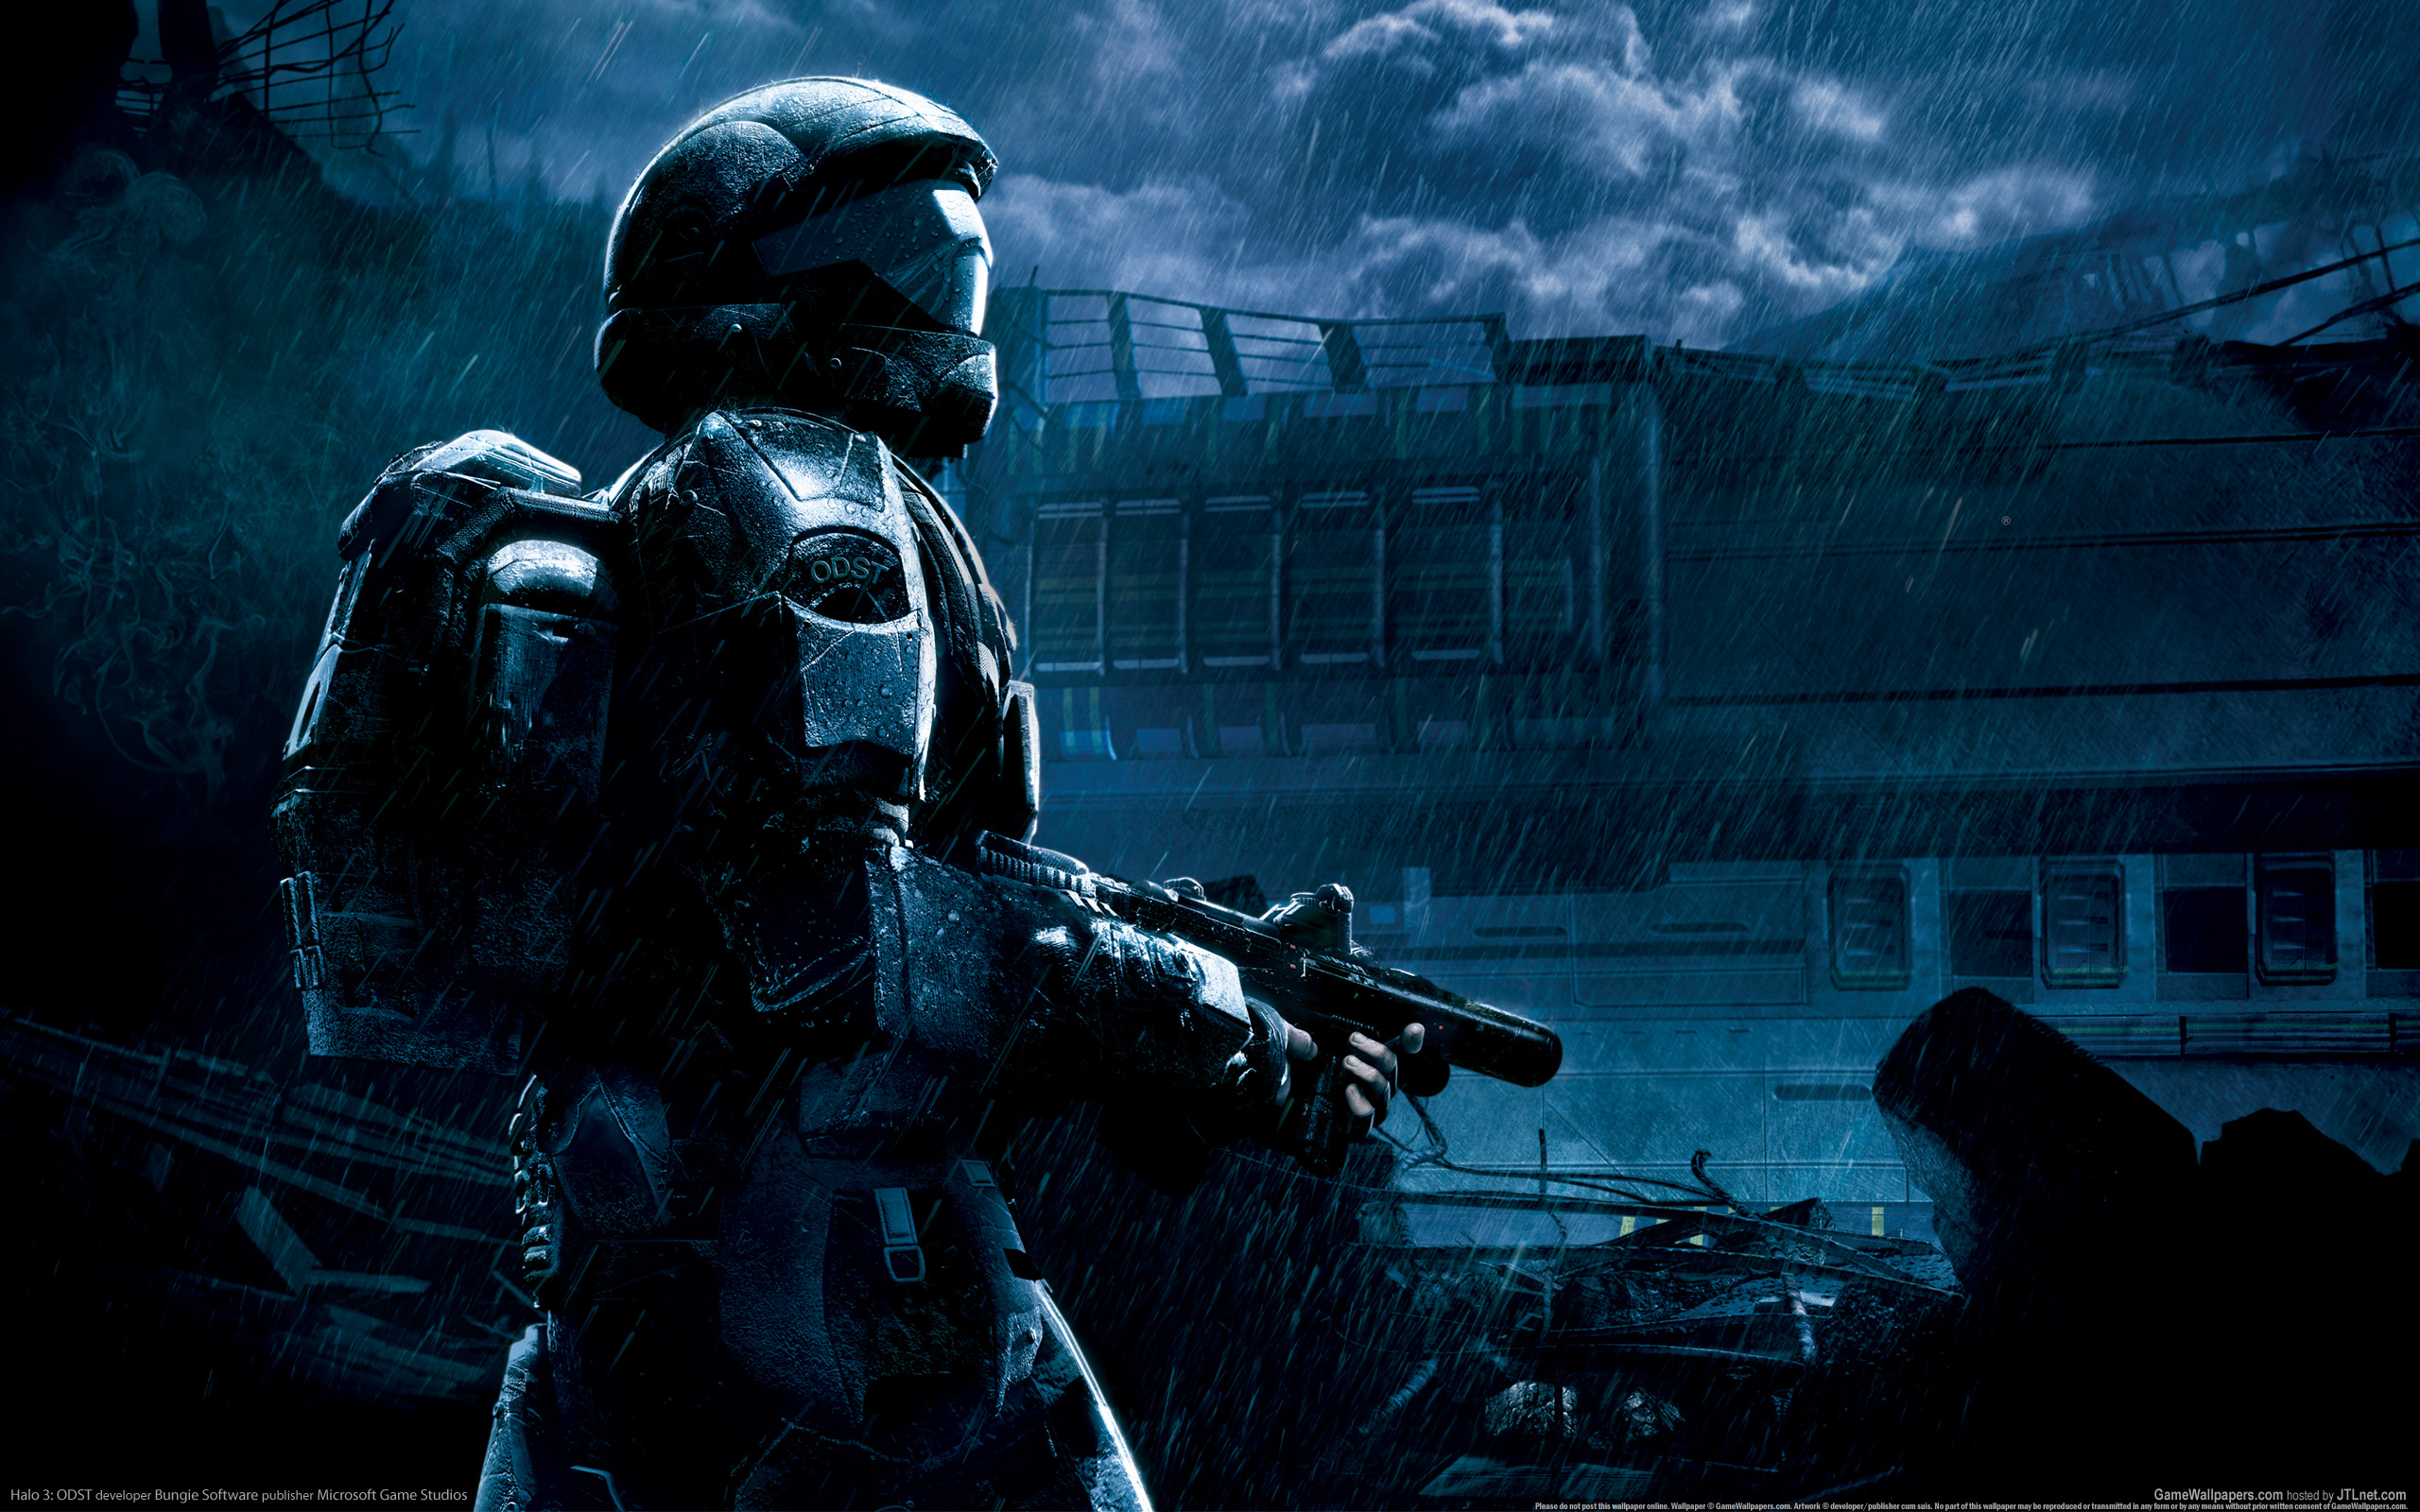 wallpaper halo 3 odst 02 2560x1600 210x131 vector wallpaper halo 3 2560x1600